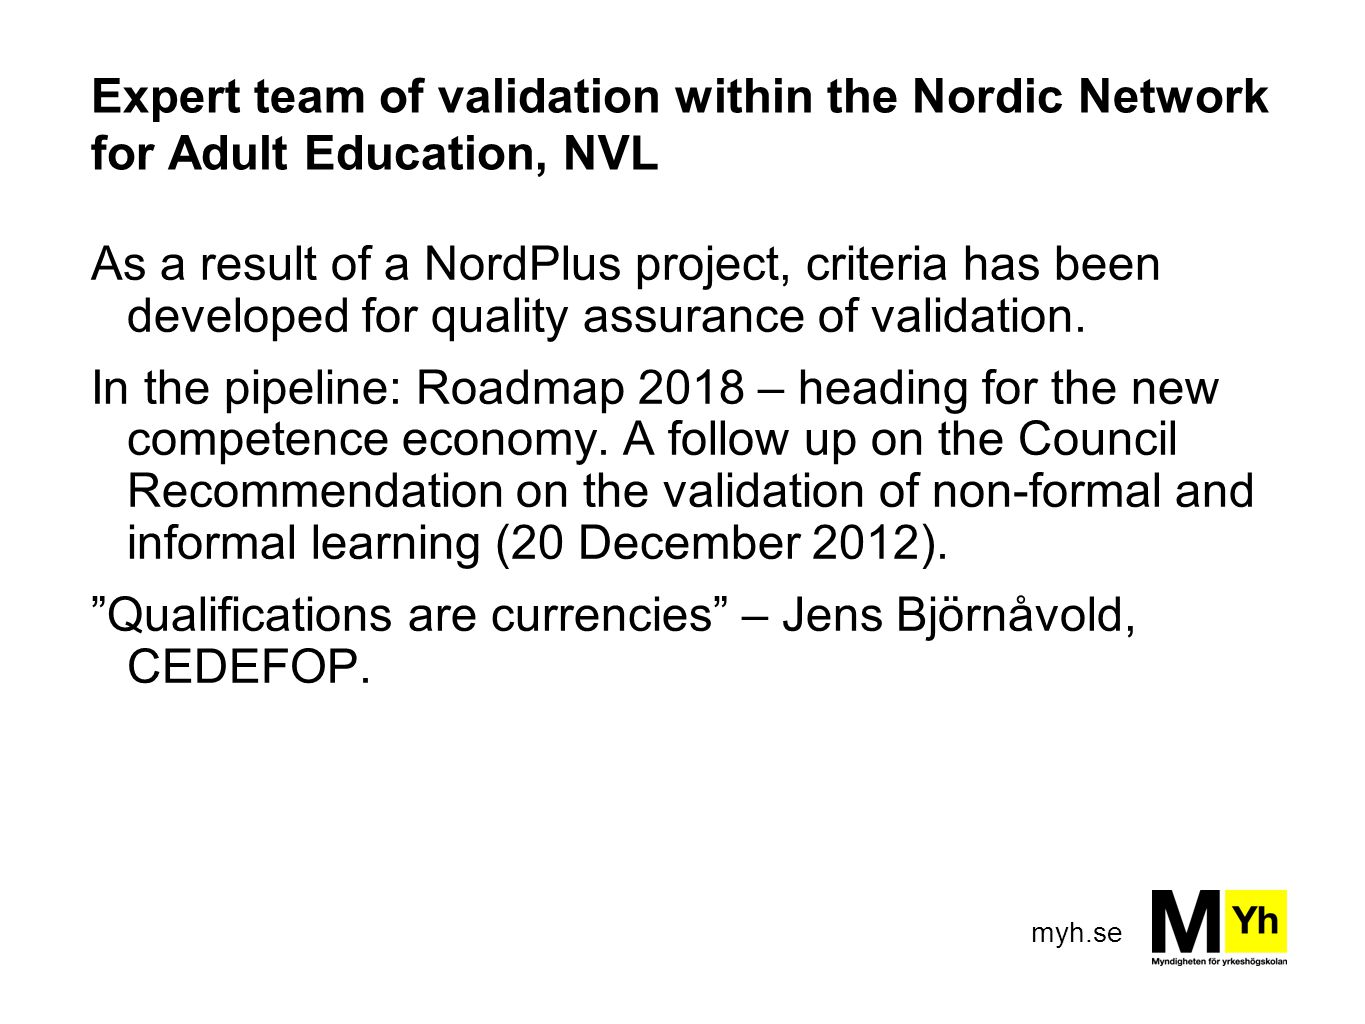 myh.se Expert team of validation within the Nordic Network for Adult Education, NVL As a result of a NordPlus project, criteria has been developed for quality assurance of validation.